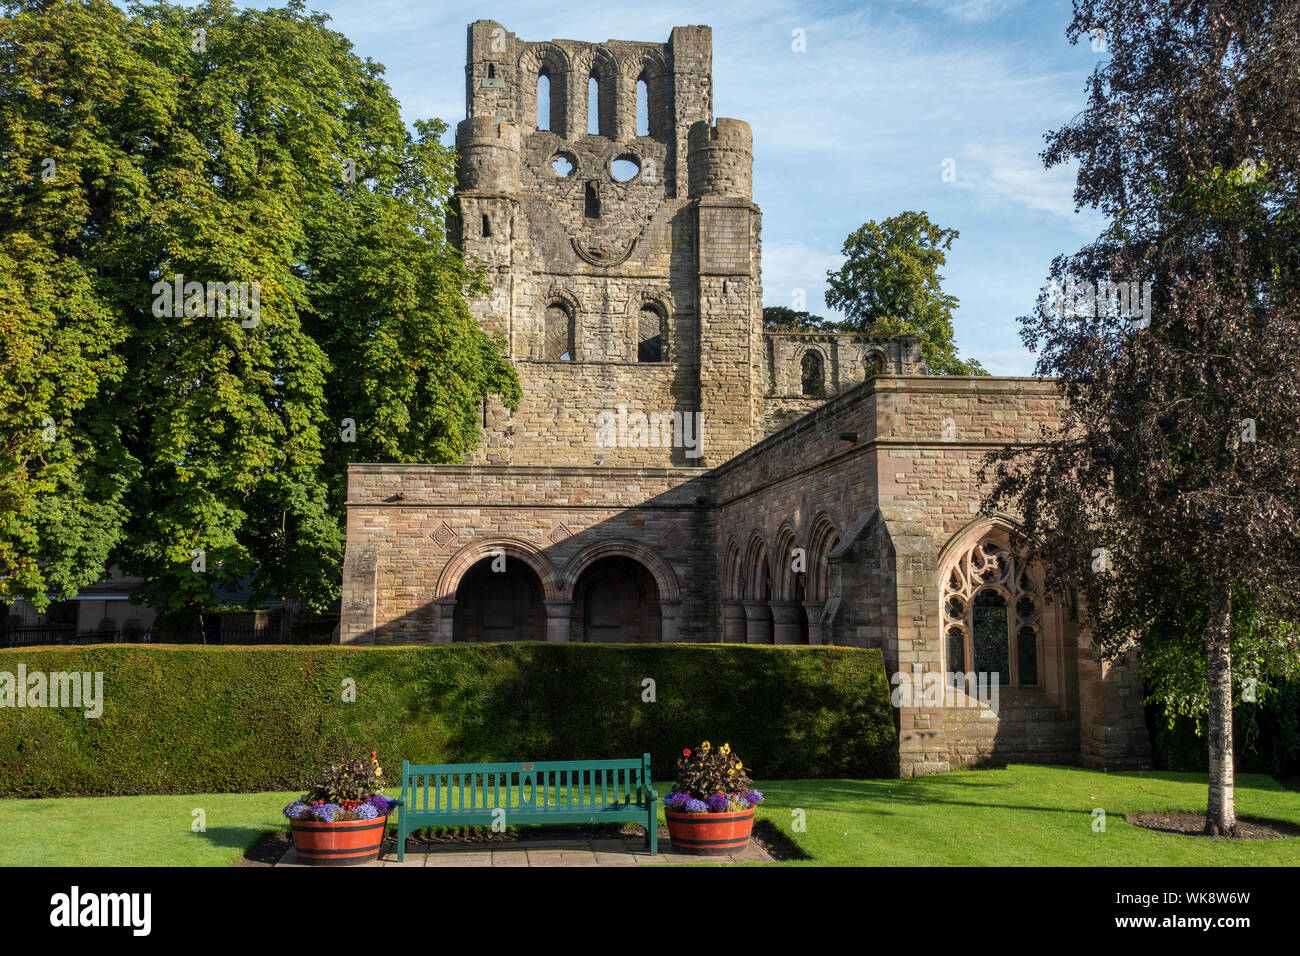 Ruins of Kelso Abbey viewed from the War Memorial Gardens, Kelso, Scottish Borders, Scotland, UK Stock Photo